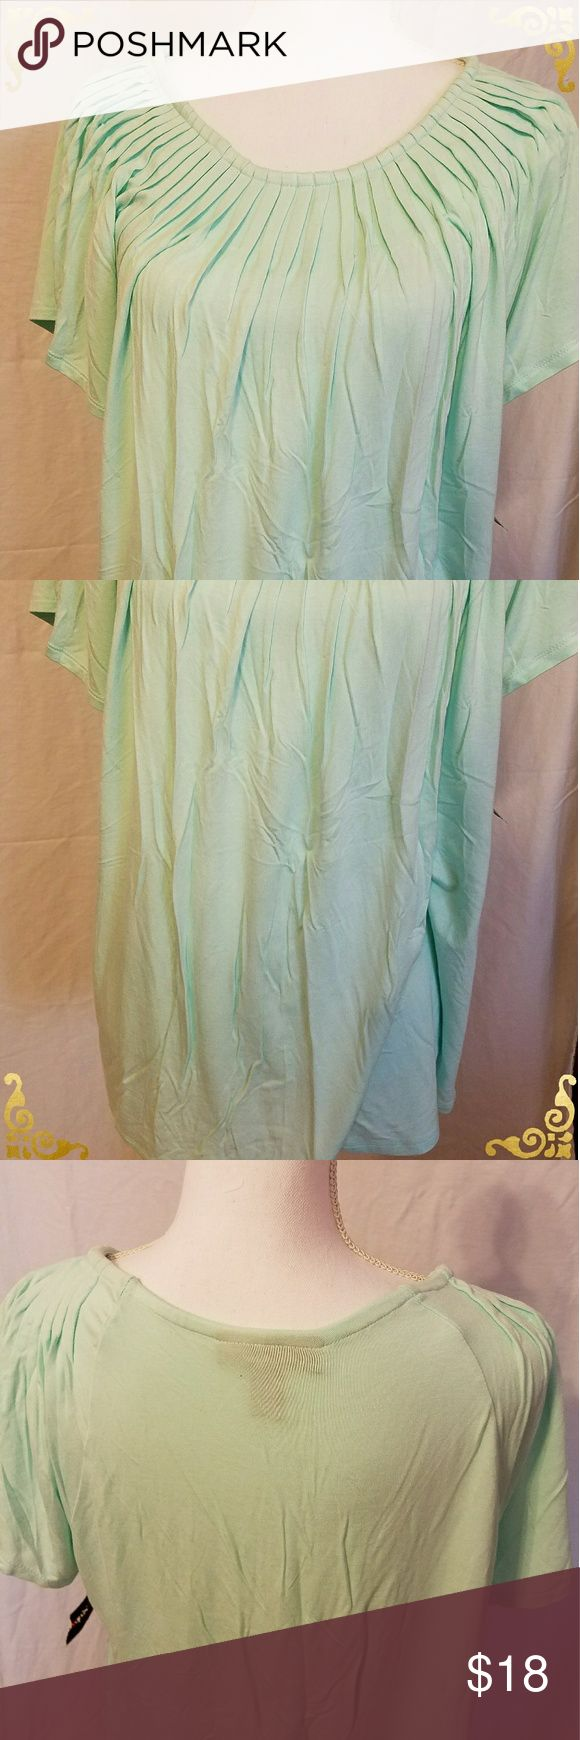 NWT Style & Co. Mint green short sleeve top. XL Beautiful light mint green color blouse. Short sleeve. Ribbed around the collar in the front. Ladies size extra large. 95% rayon, 5% spandex.  Same / Next Day Shipping 📦 Smoke-free home 🏠  Bundle items, great savings 💲 Free sample / gift with every purchase 🎁 And thanks for stopping by  to browse and hopefully shop my closet 💄💍👢👗👙🛍 Style & Co Tops Blouses